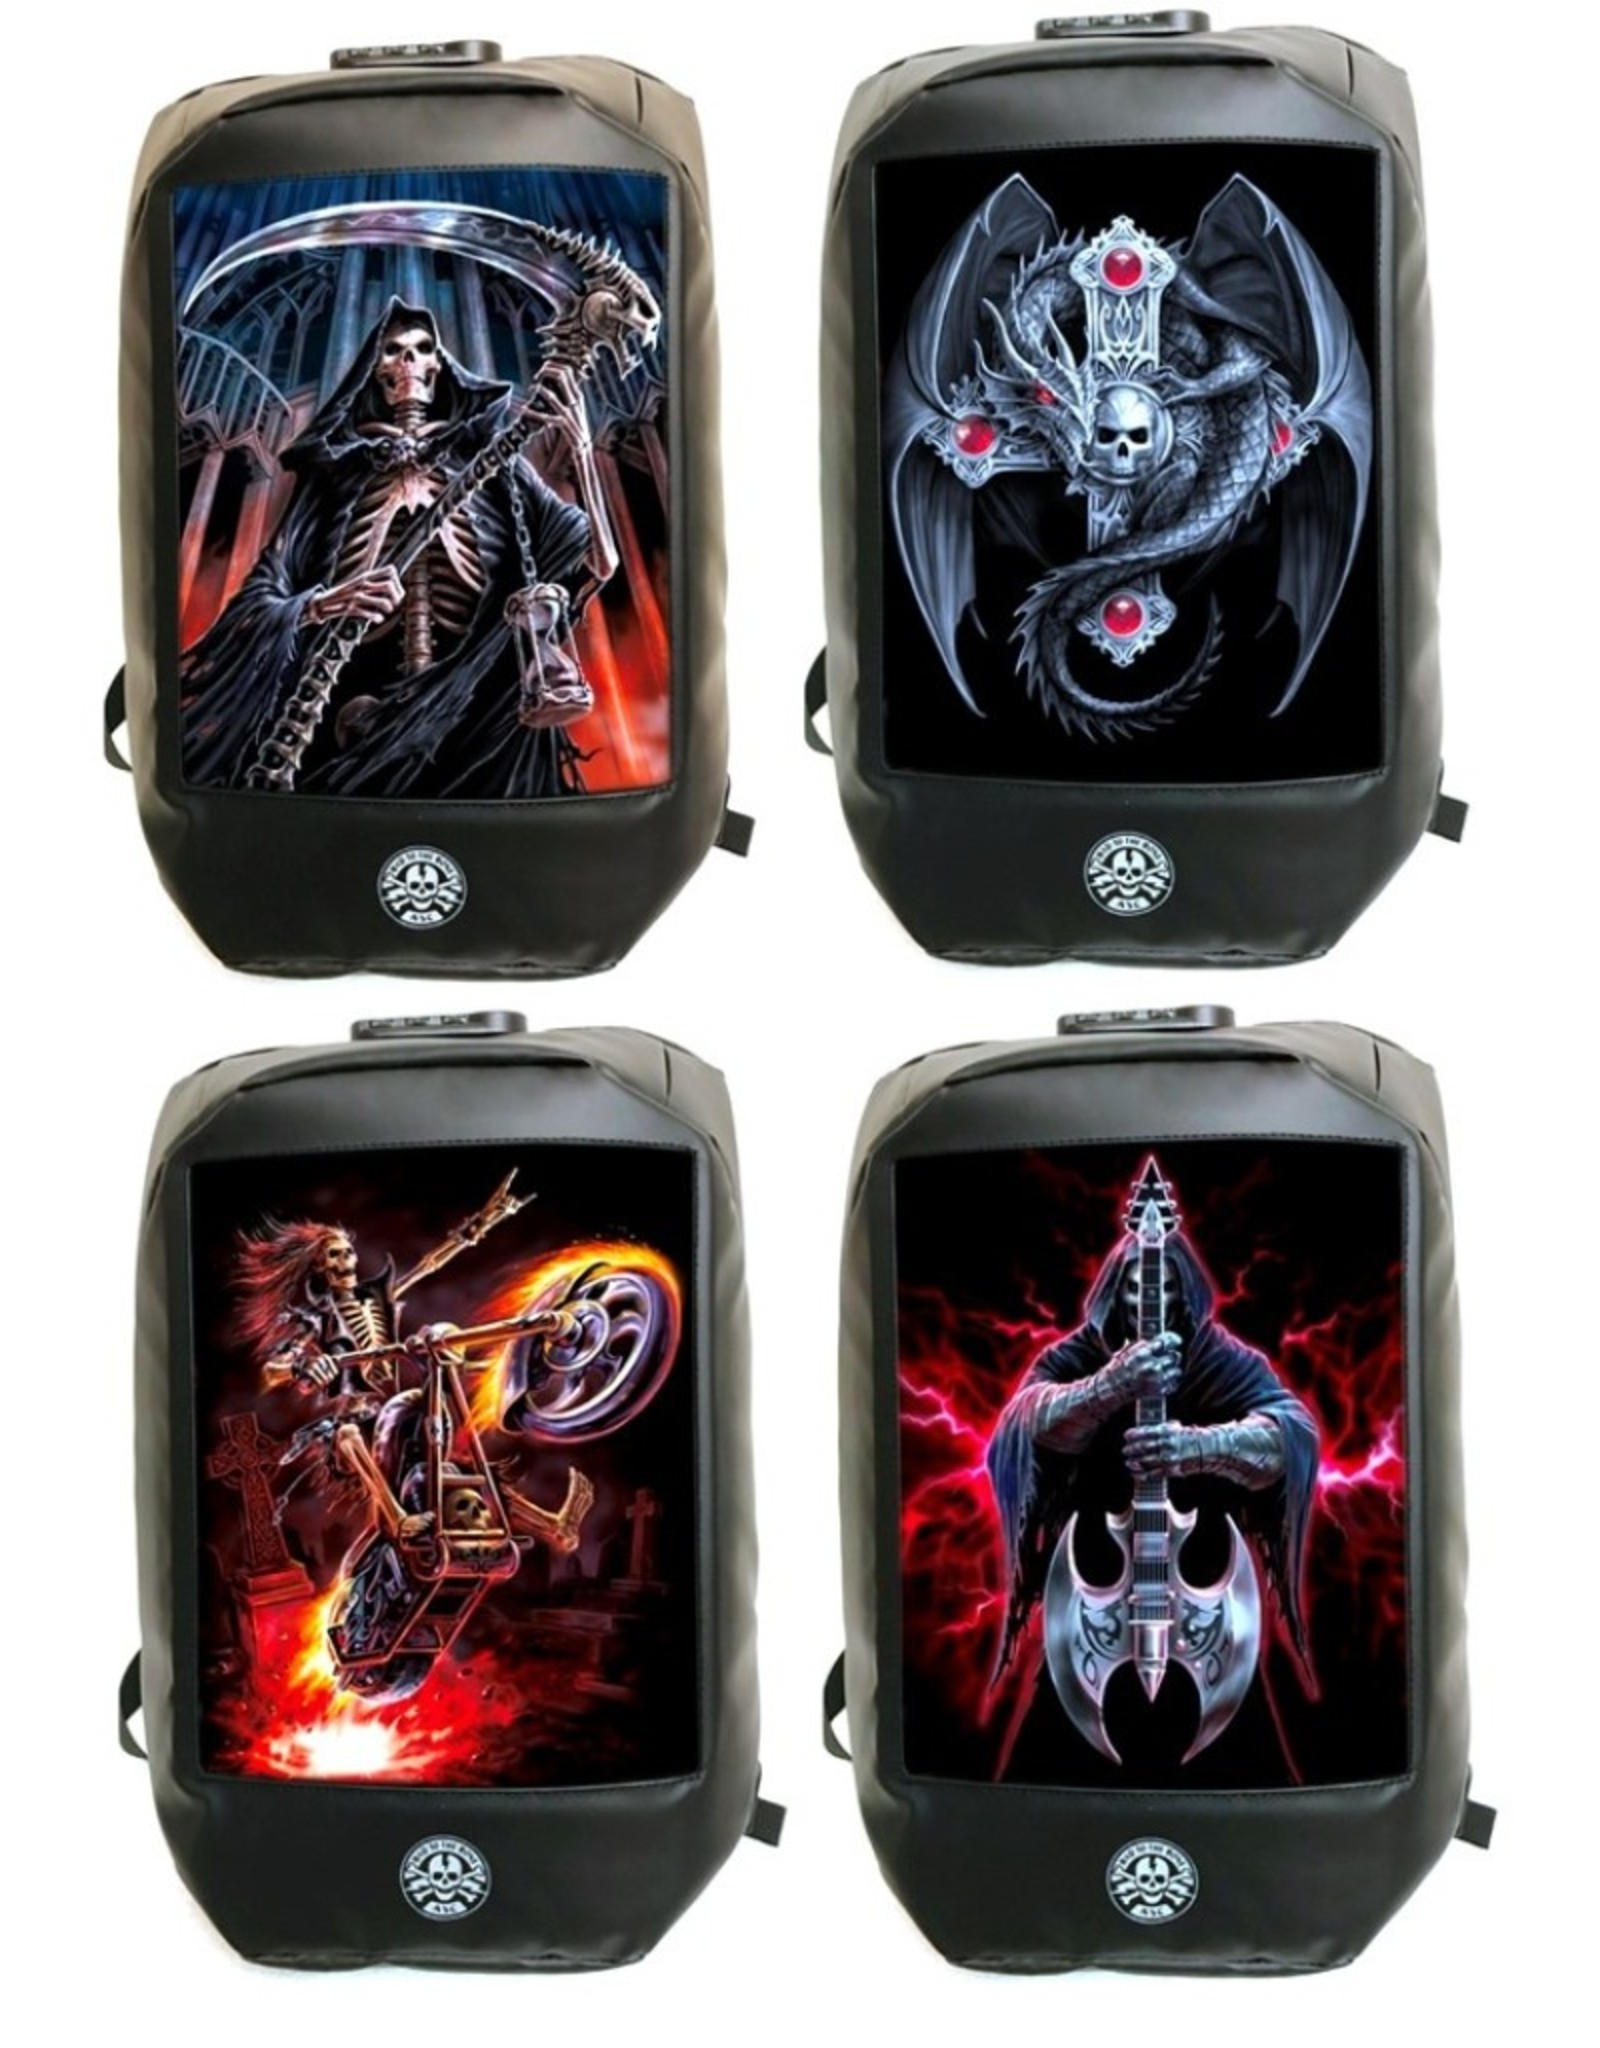 Anne Stokes Gothic bags Steampunk bags - Anne Stokes Bad to the Bone Gothic Guardian Backpack 3D